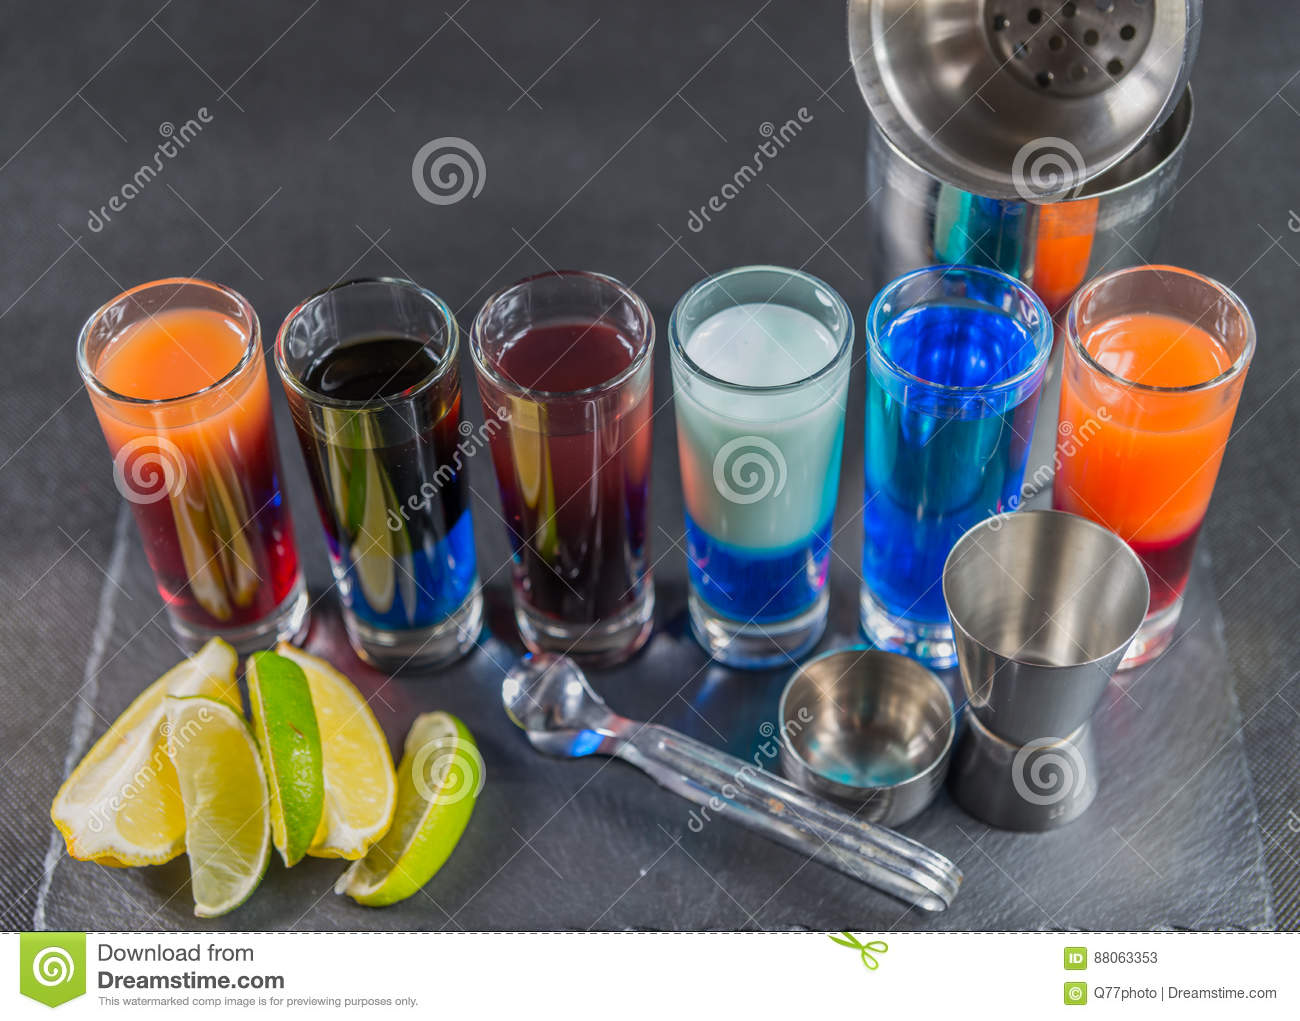 six different colored shot drinks, lined up on a black stone plate, ice cubes in shaker and ice tongs, lemon and lime